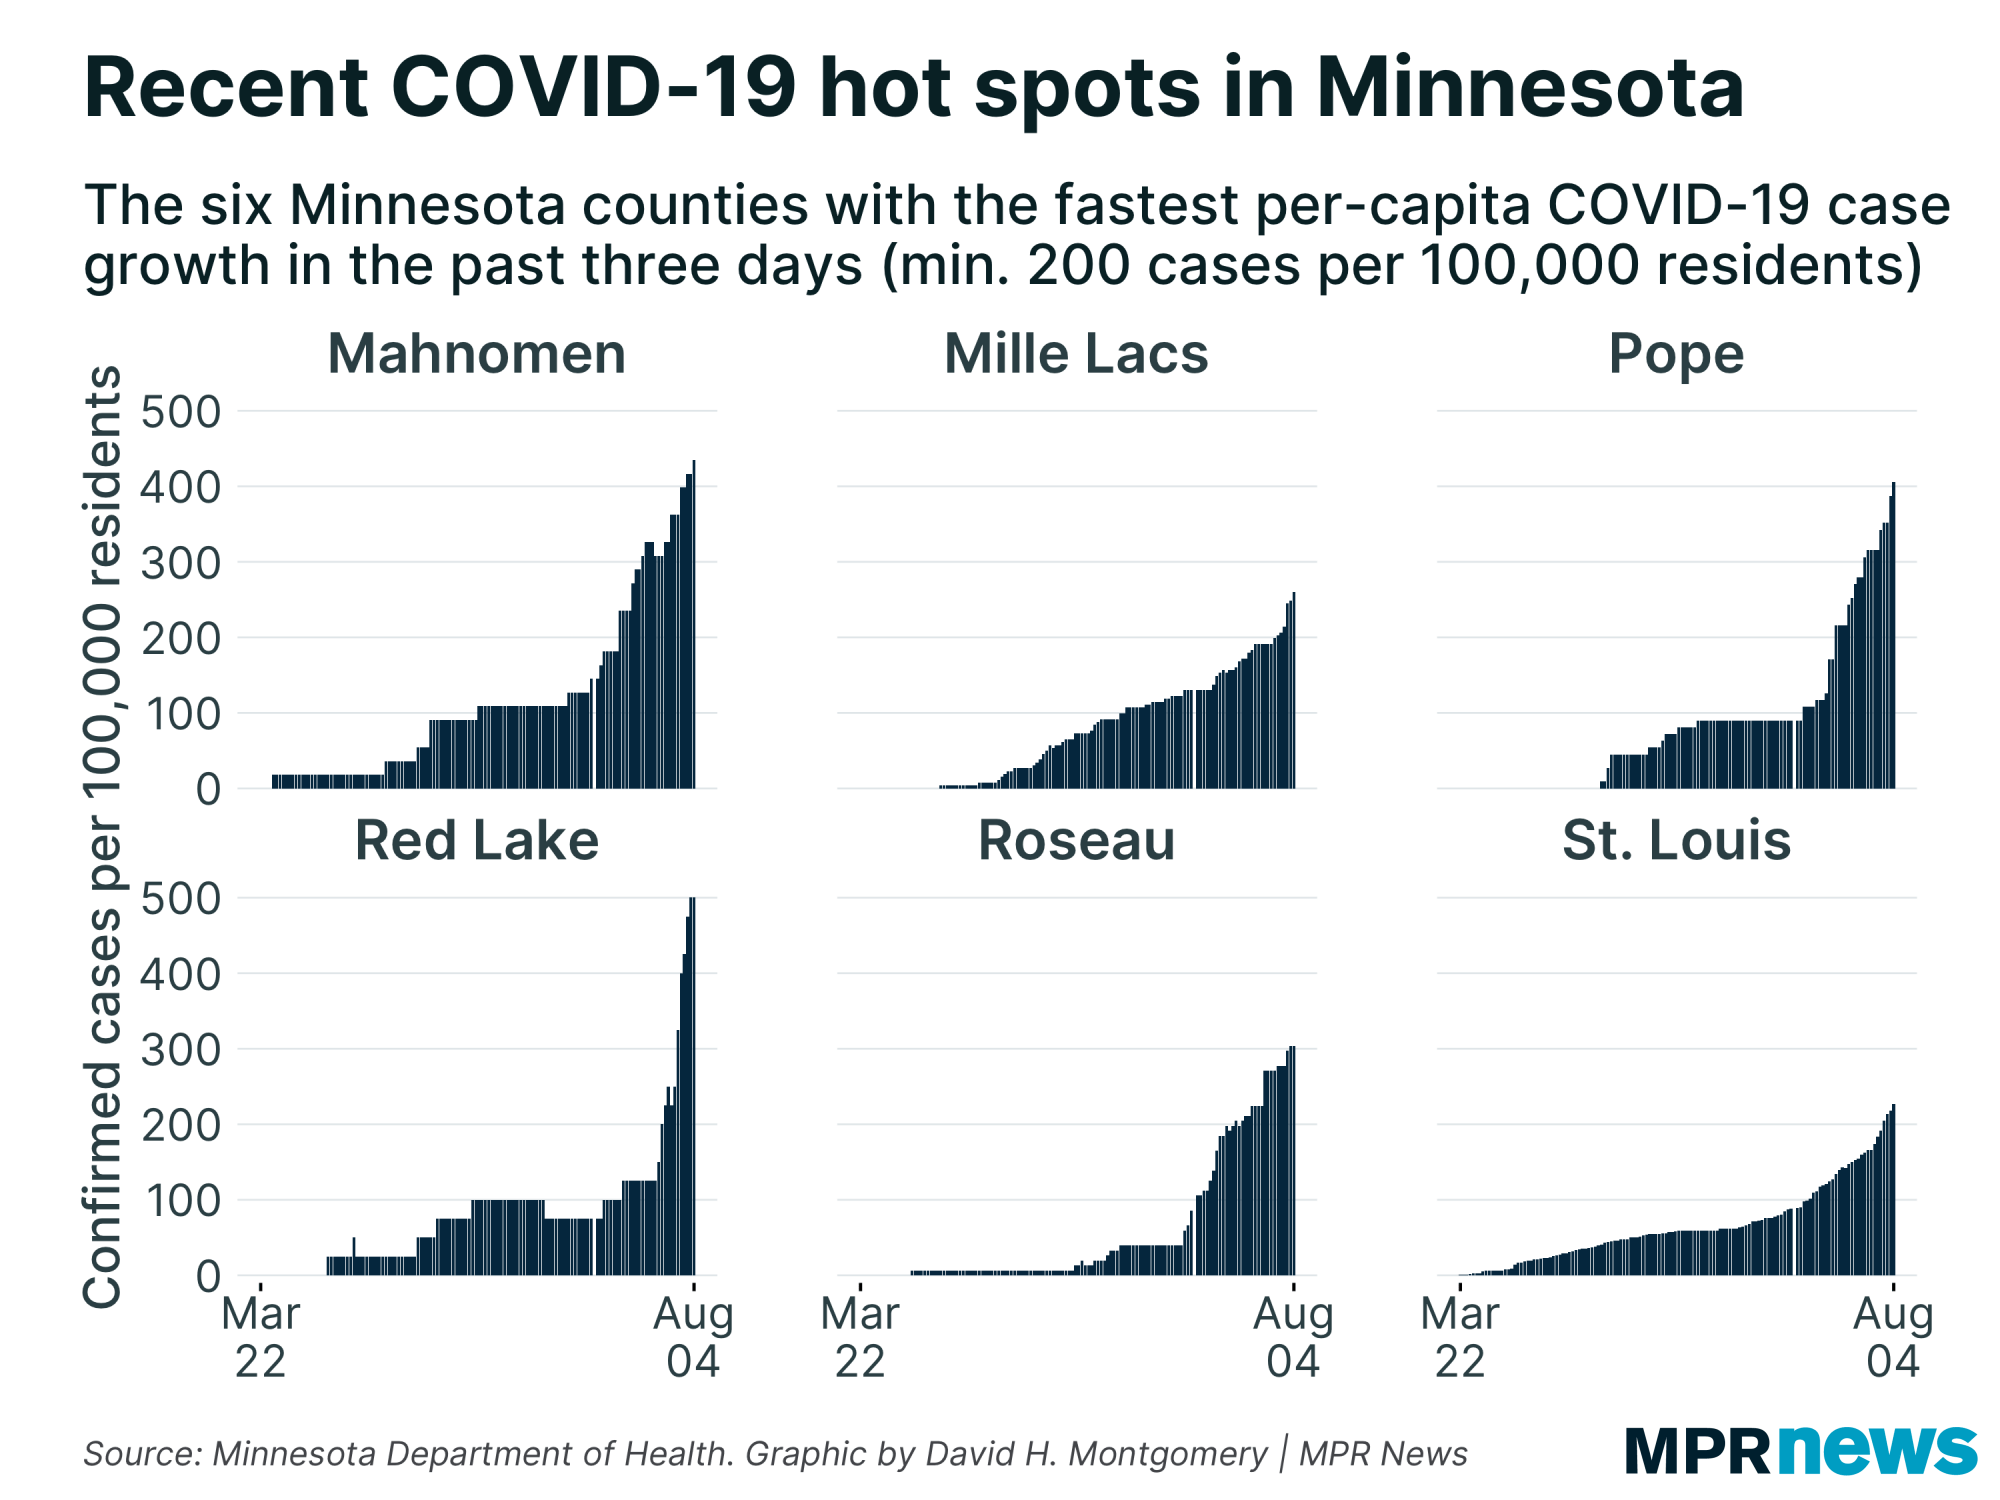 MN counties with the fastest growth per capita in COVID-19 cases